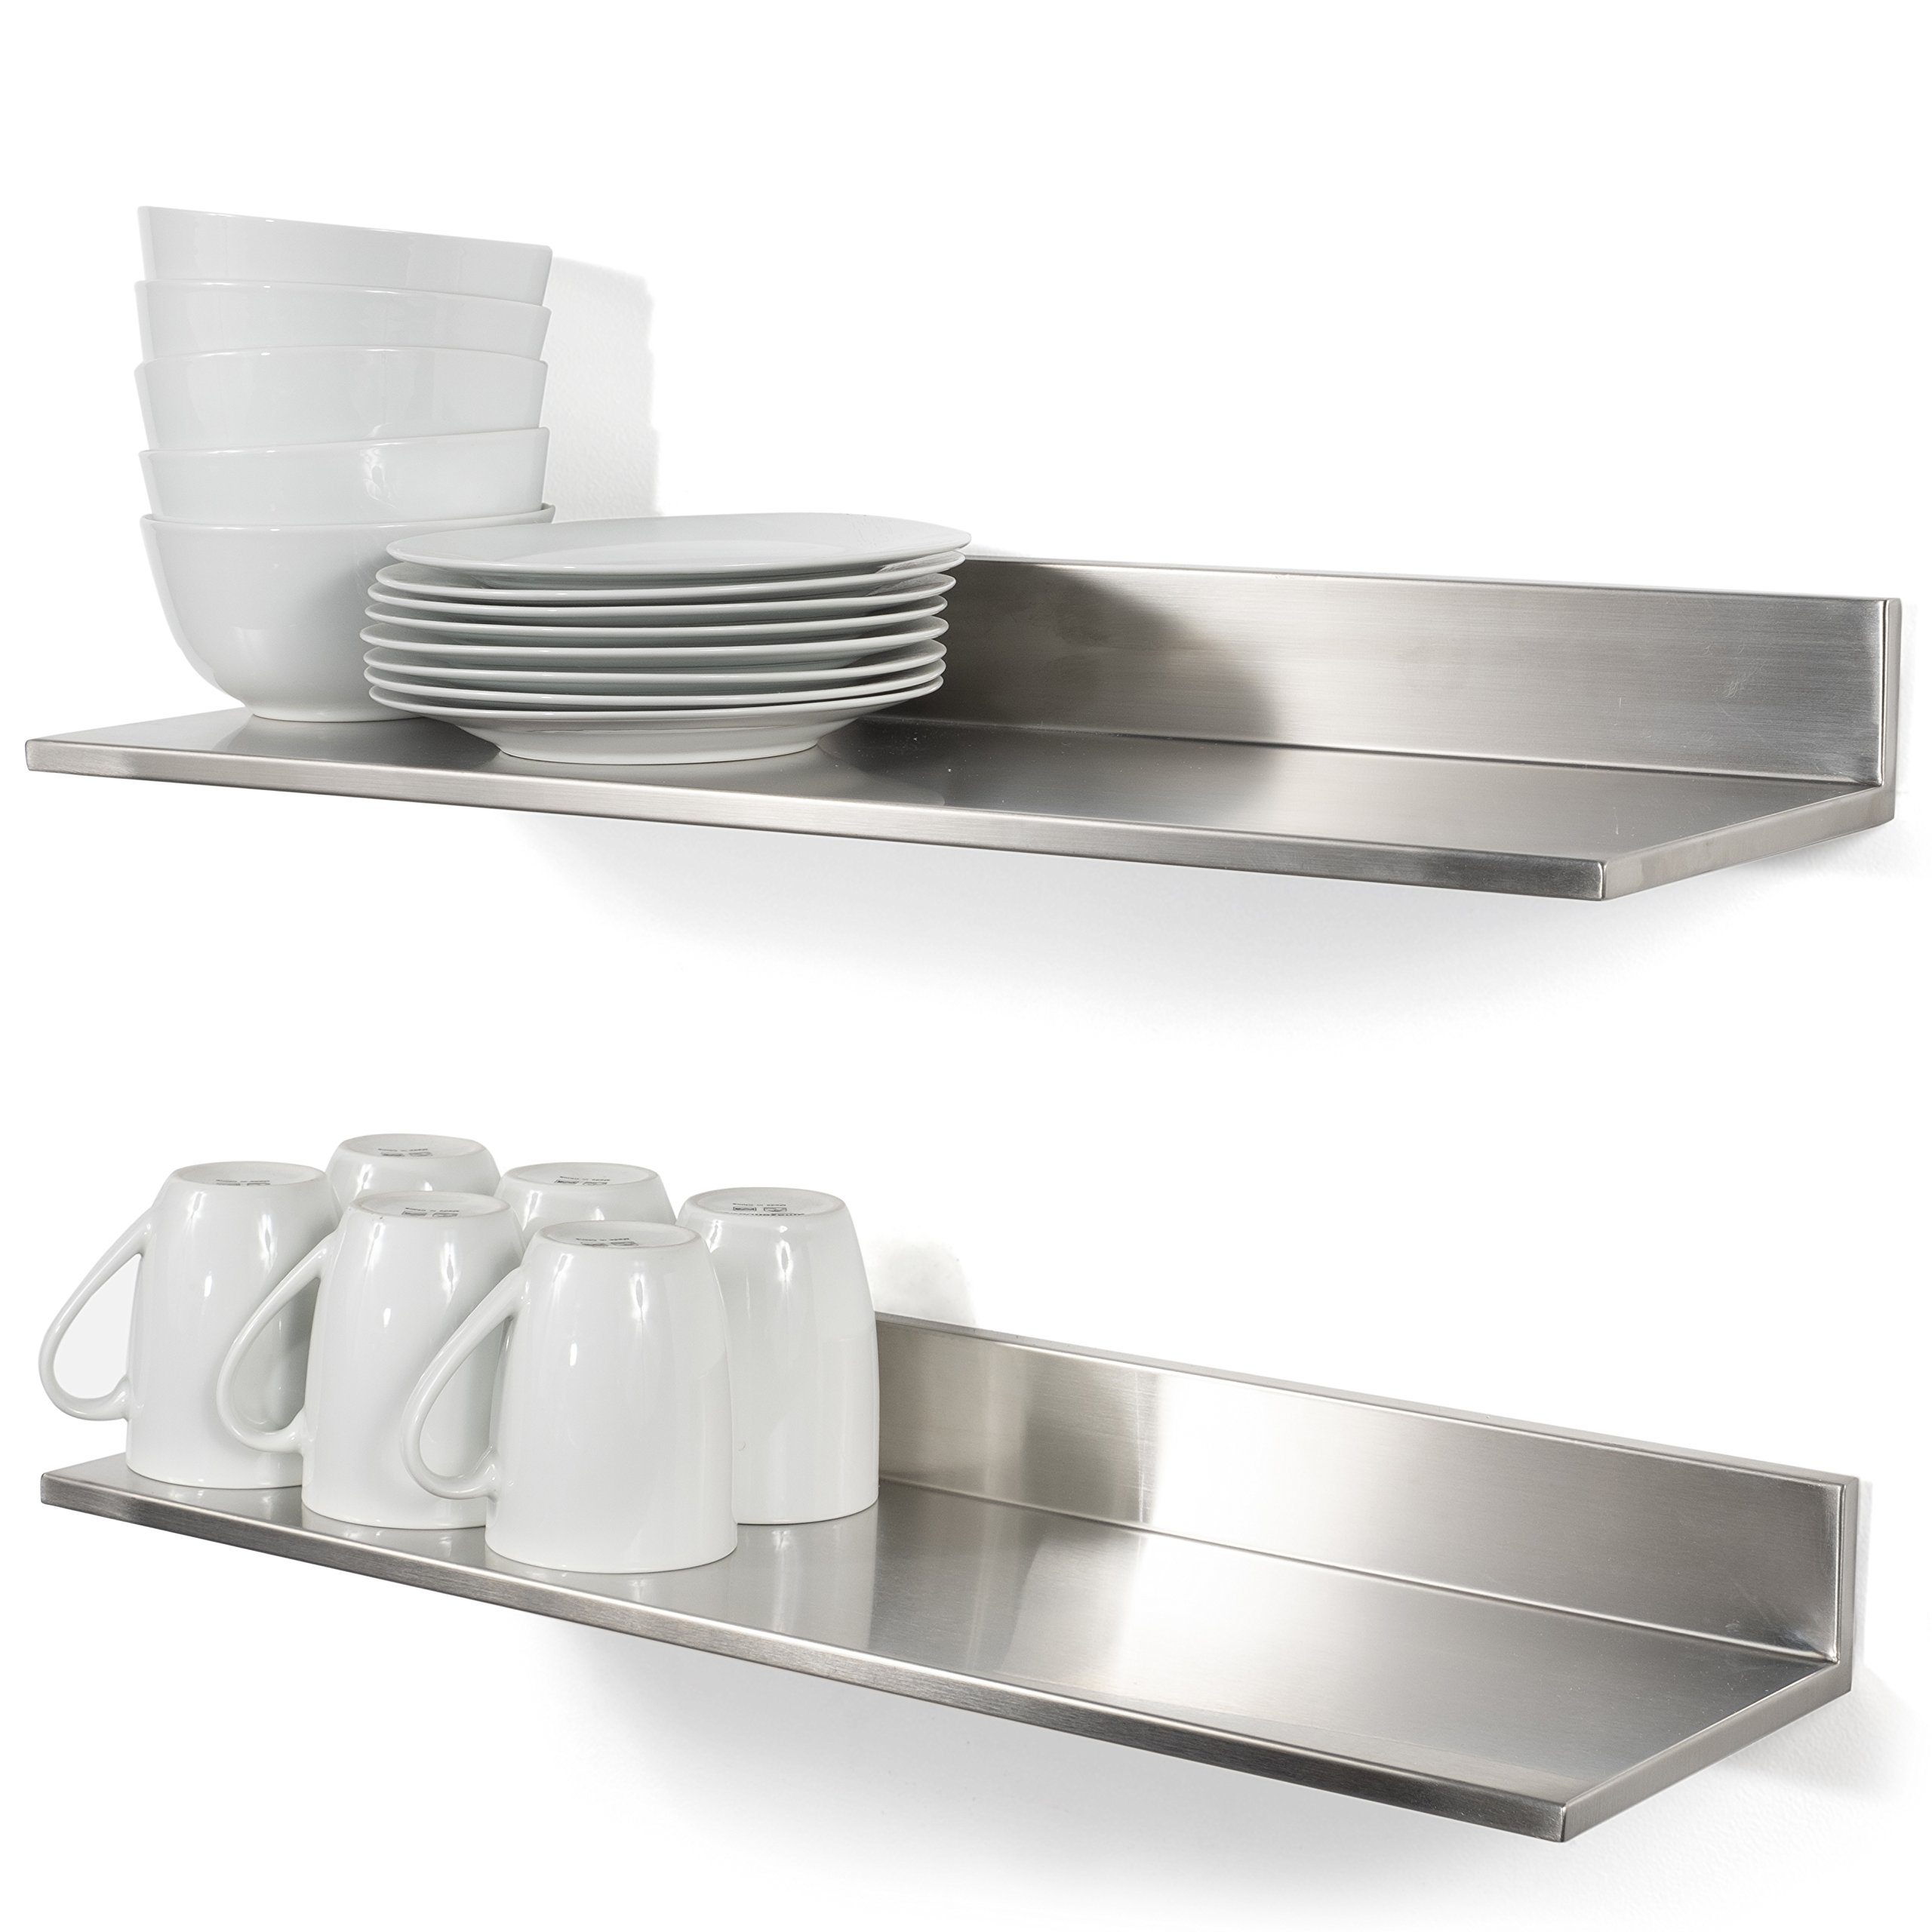 Durable Stainless Steel Wall Mountable 23.60 Inch Kitchen Shelf for Restaurants Businesses and Eateries (2)